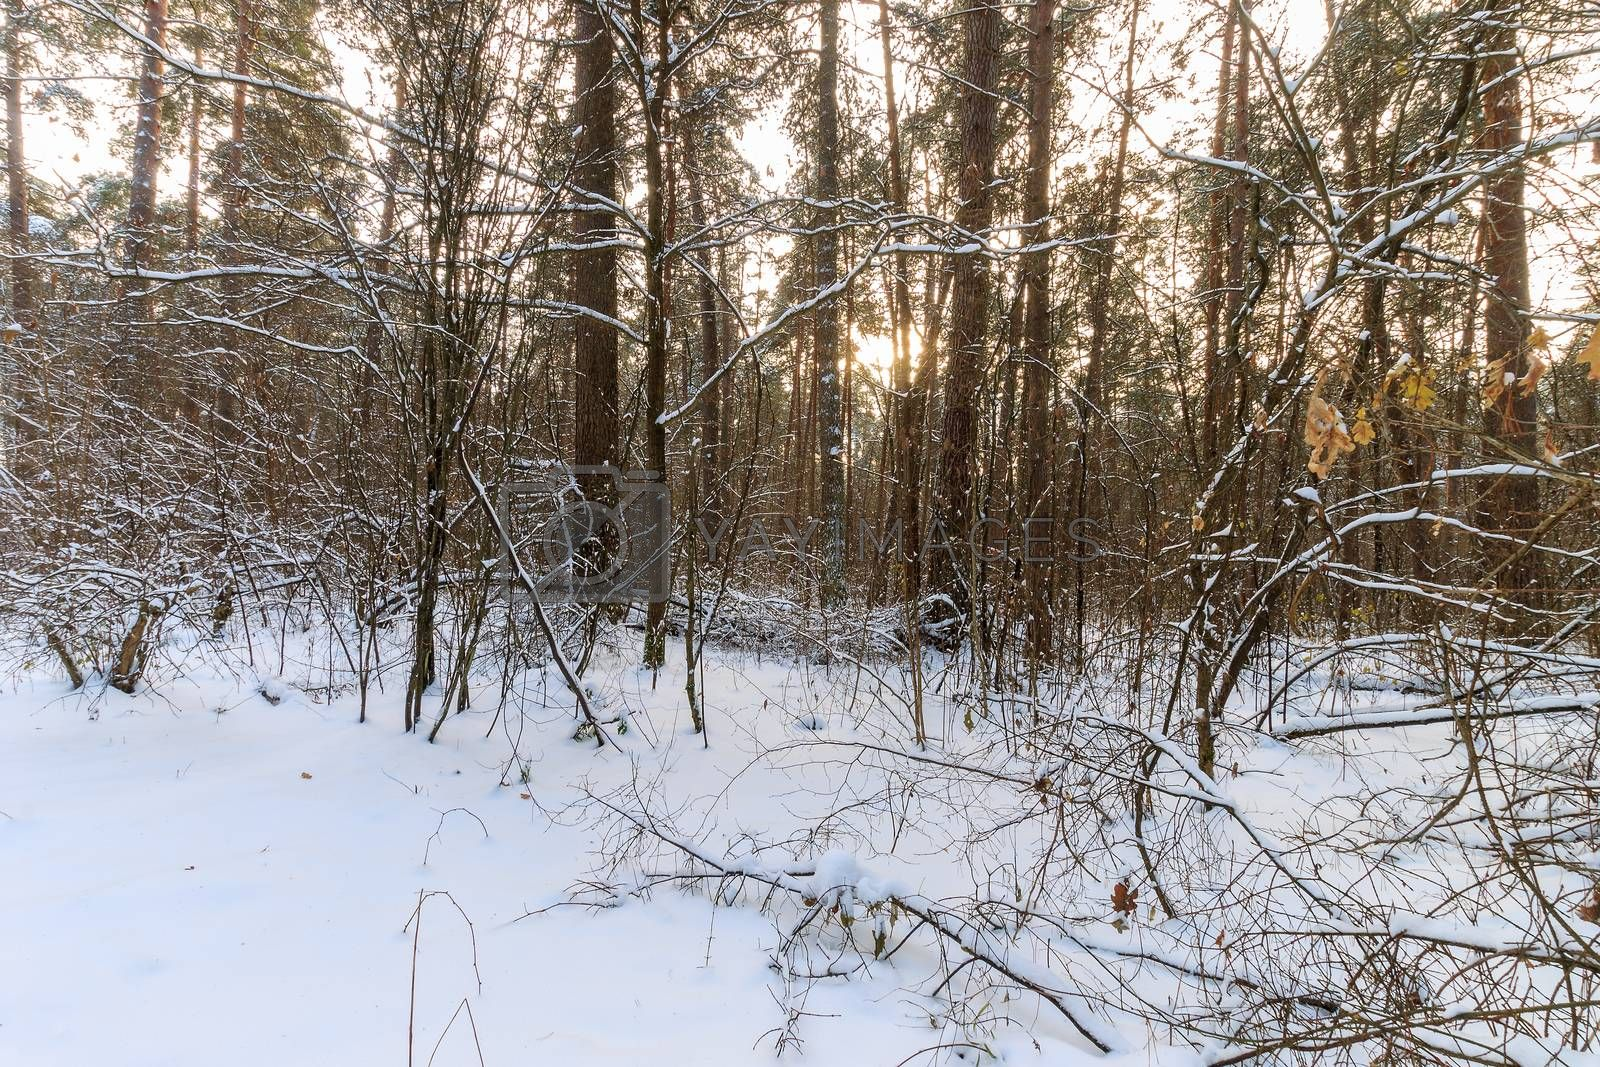 Landscape of winter pine forest covered with frost at sunny weather. First snow at autumn season.